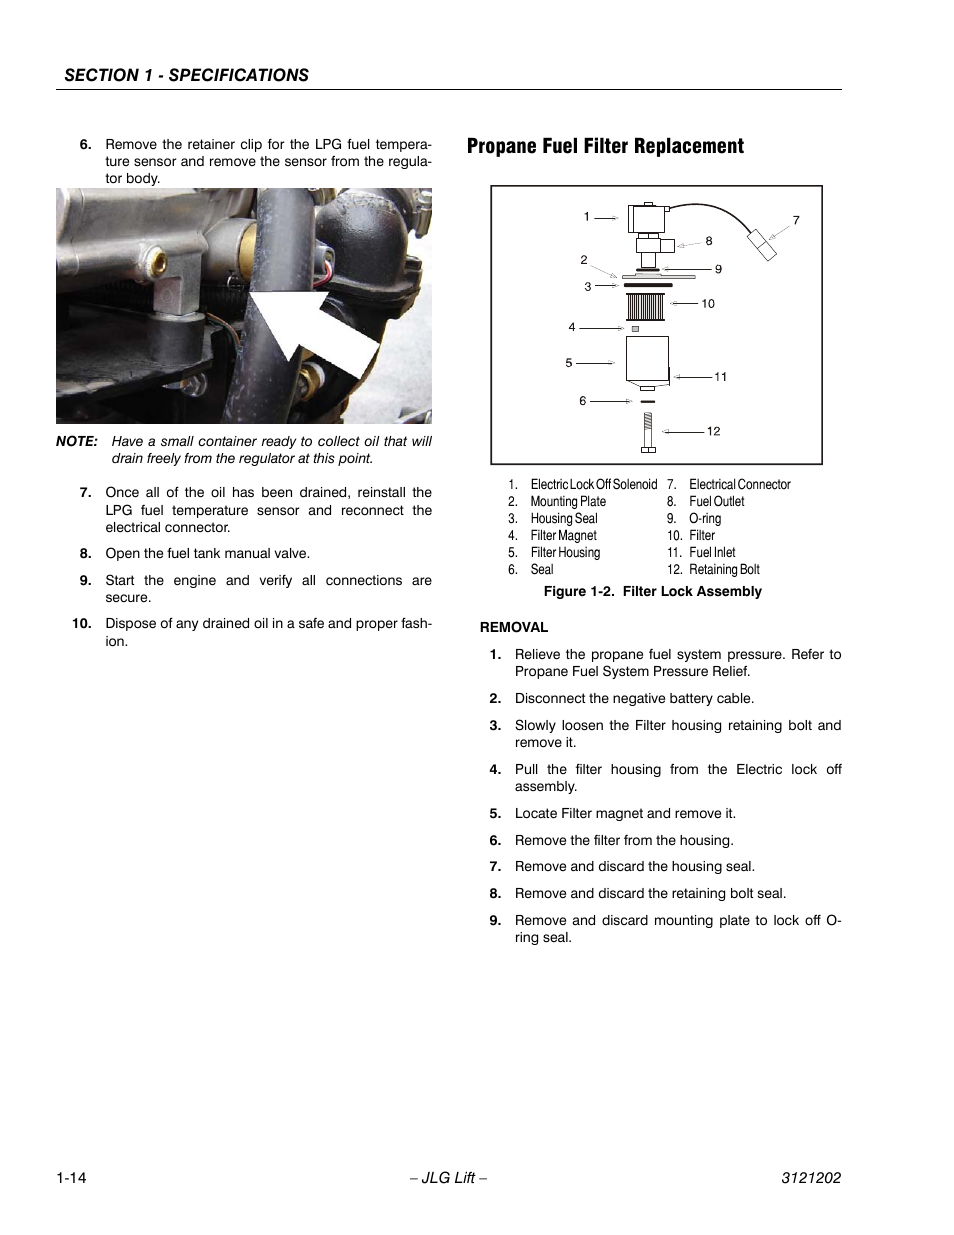 propane fuel filter replacement, propane fuel filter replacement -14, filter  lock assembly -14 | jlg 660sj service manual user manual | page 30 / 334